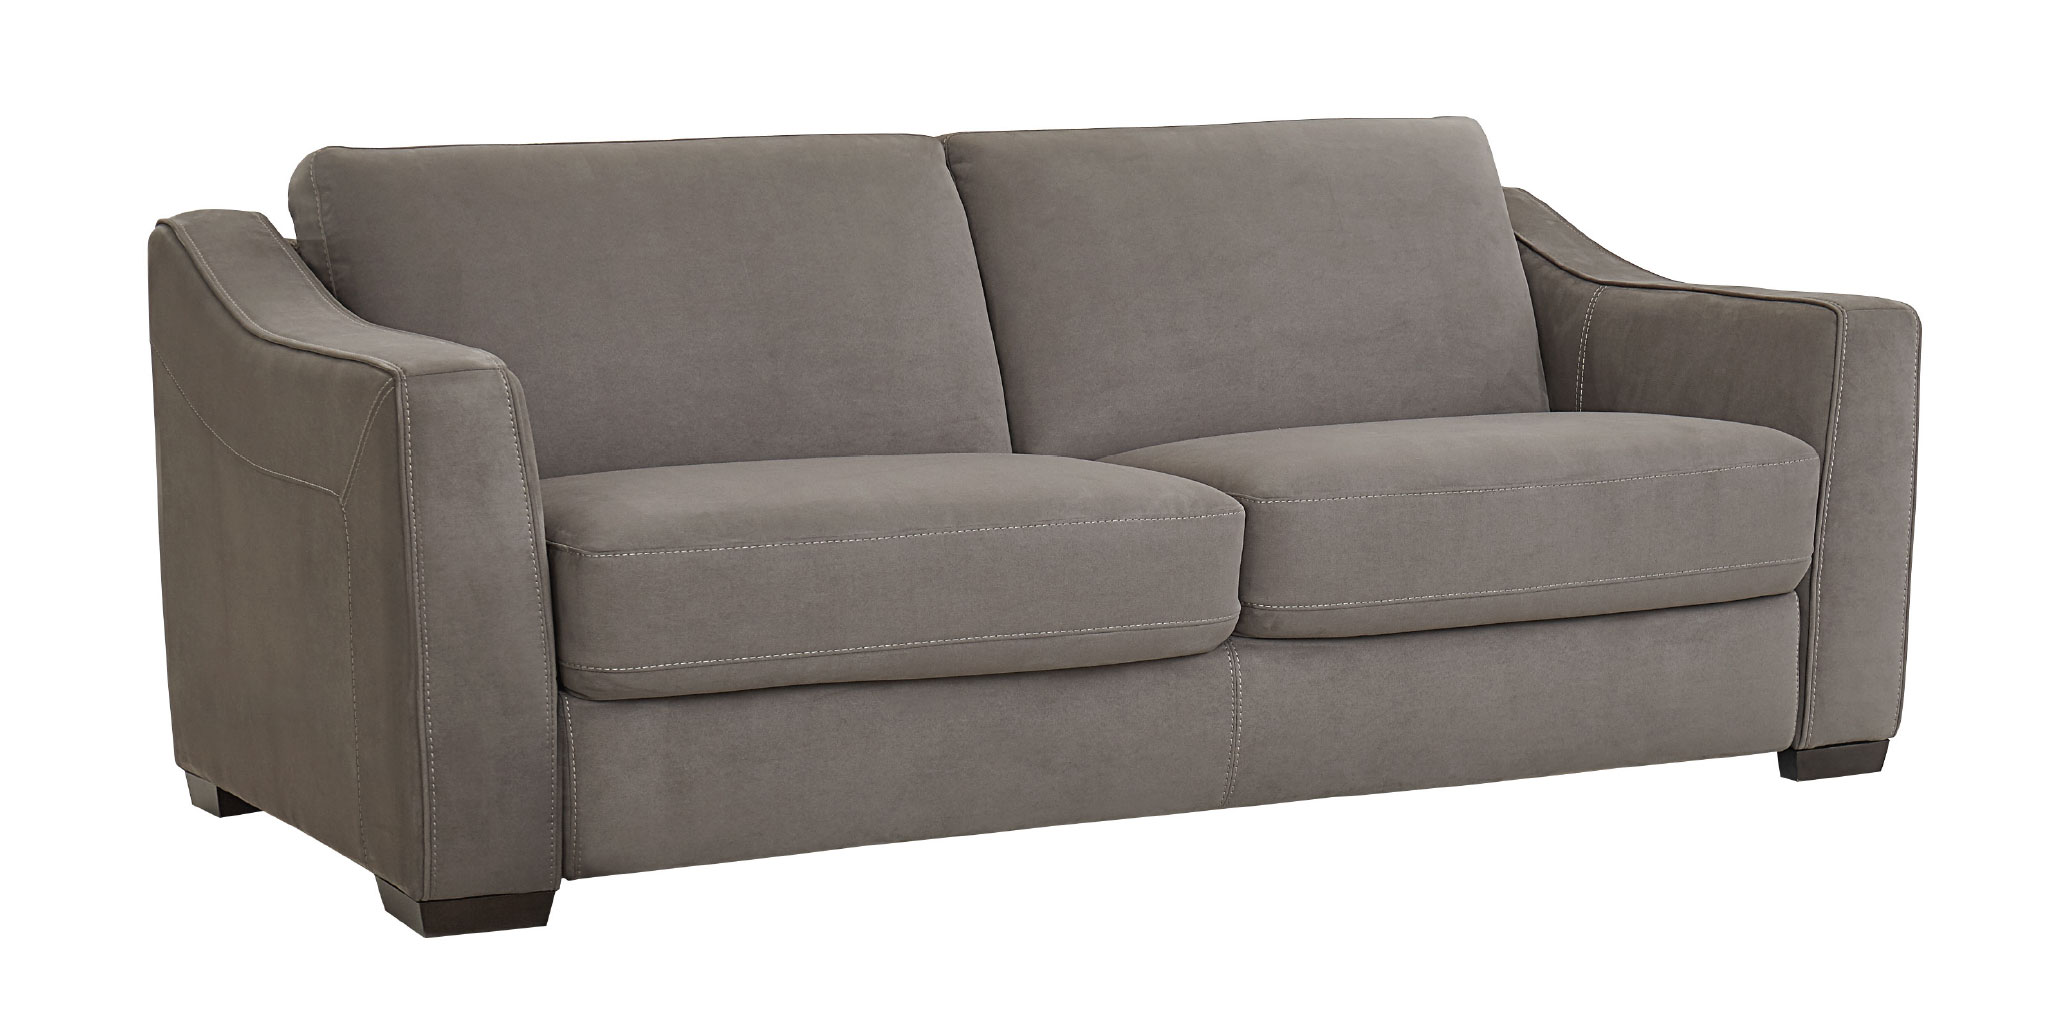 Cordoba Sofa Bed